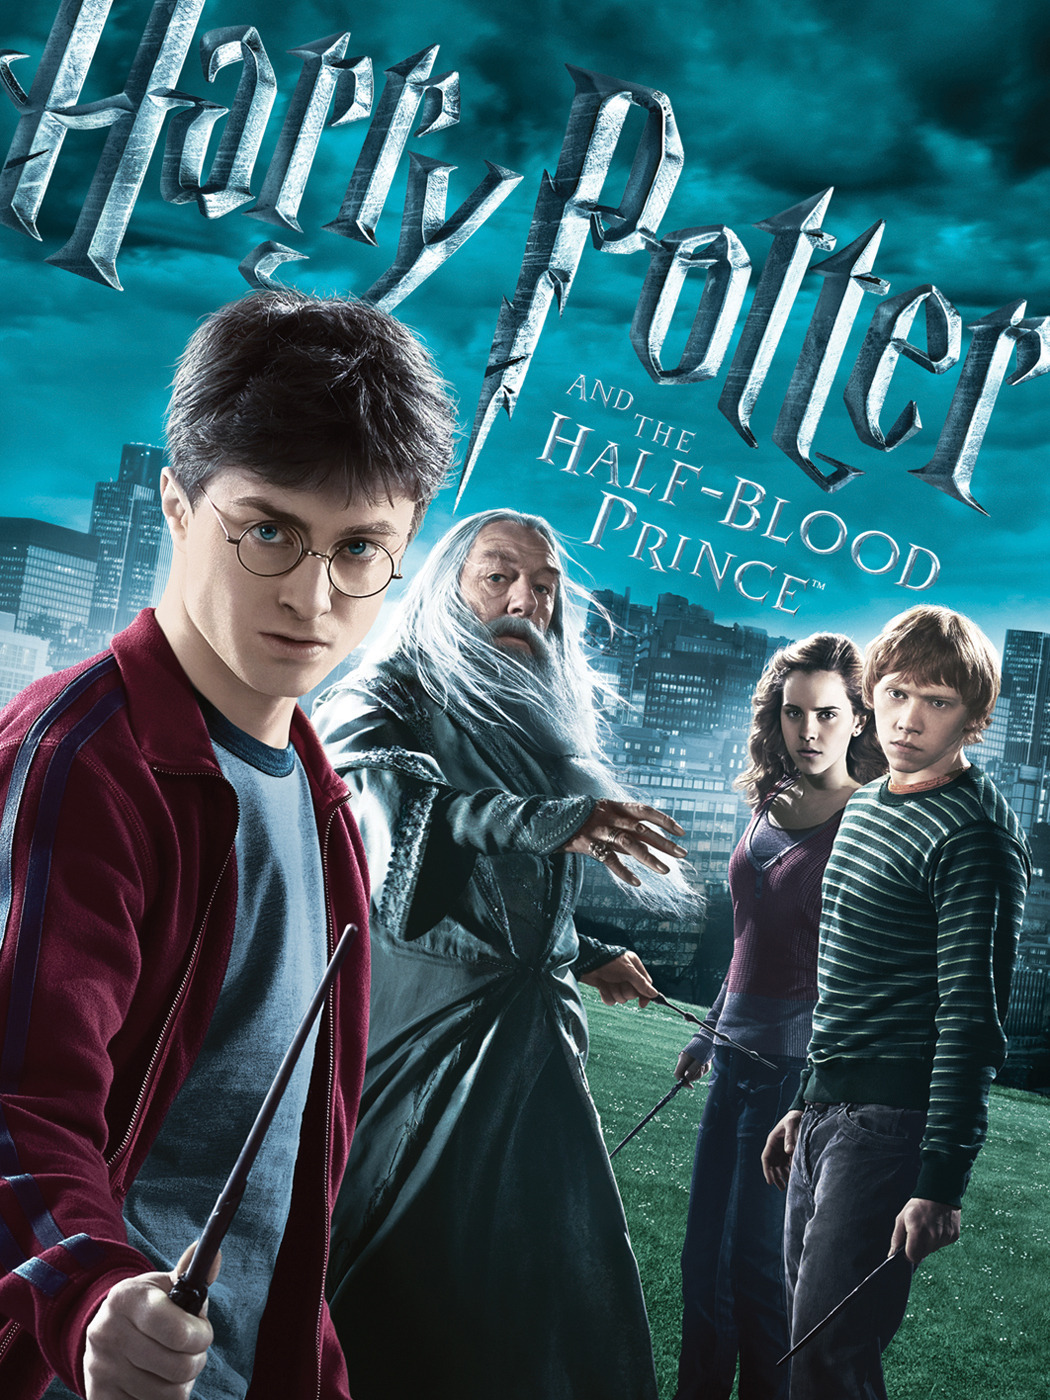 Harry potter and the half blood prince video clip